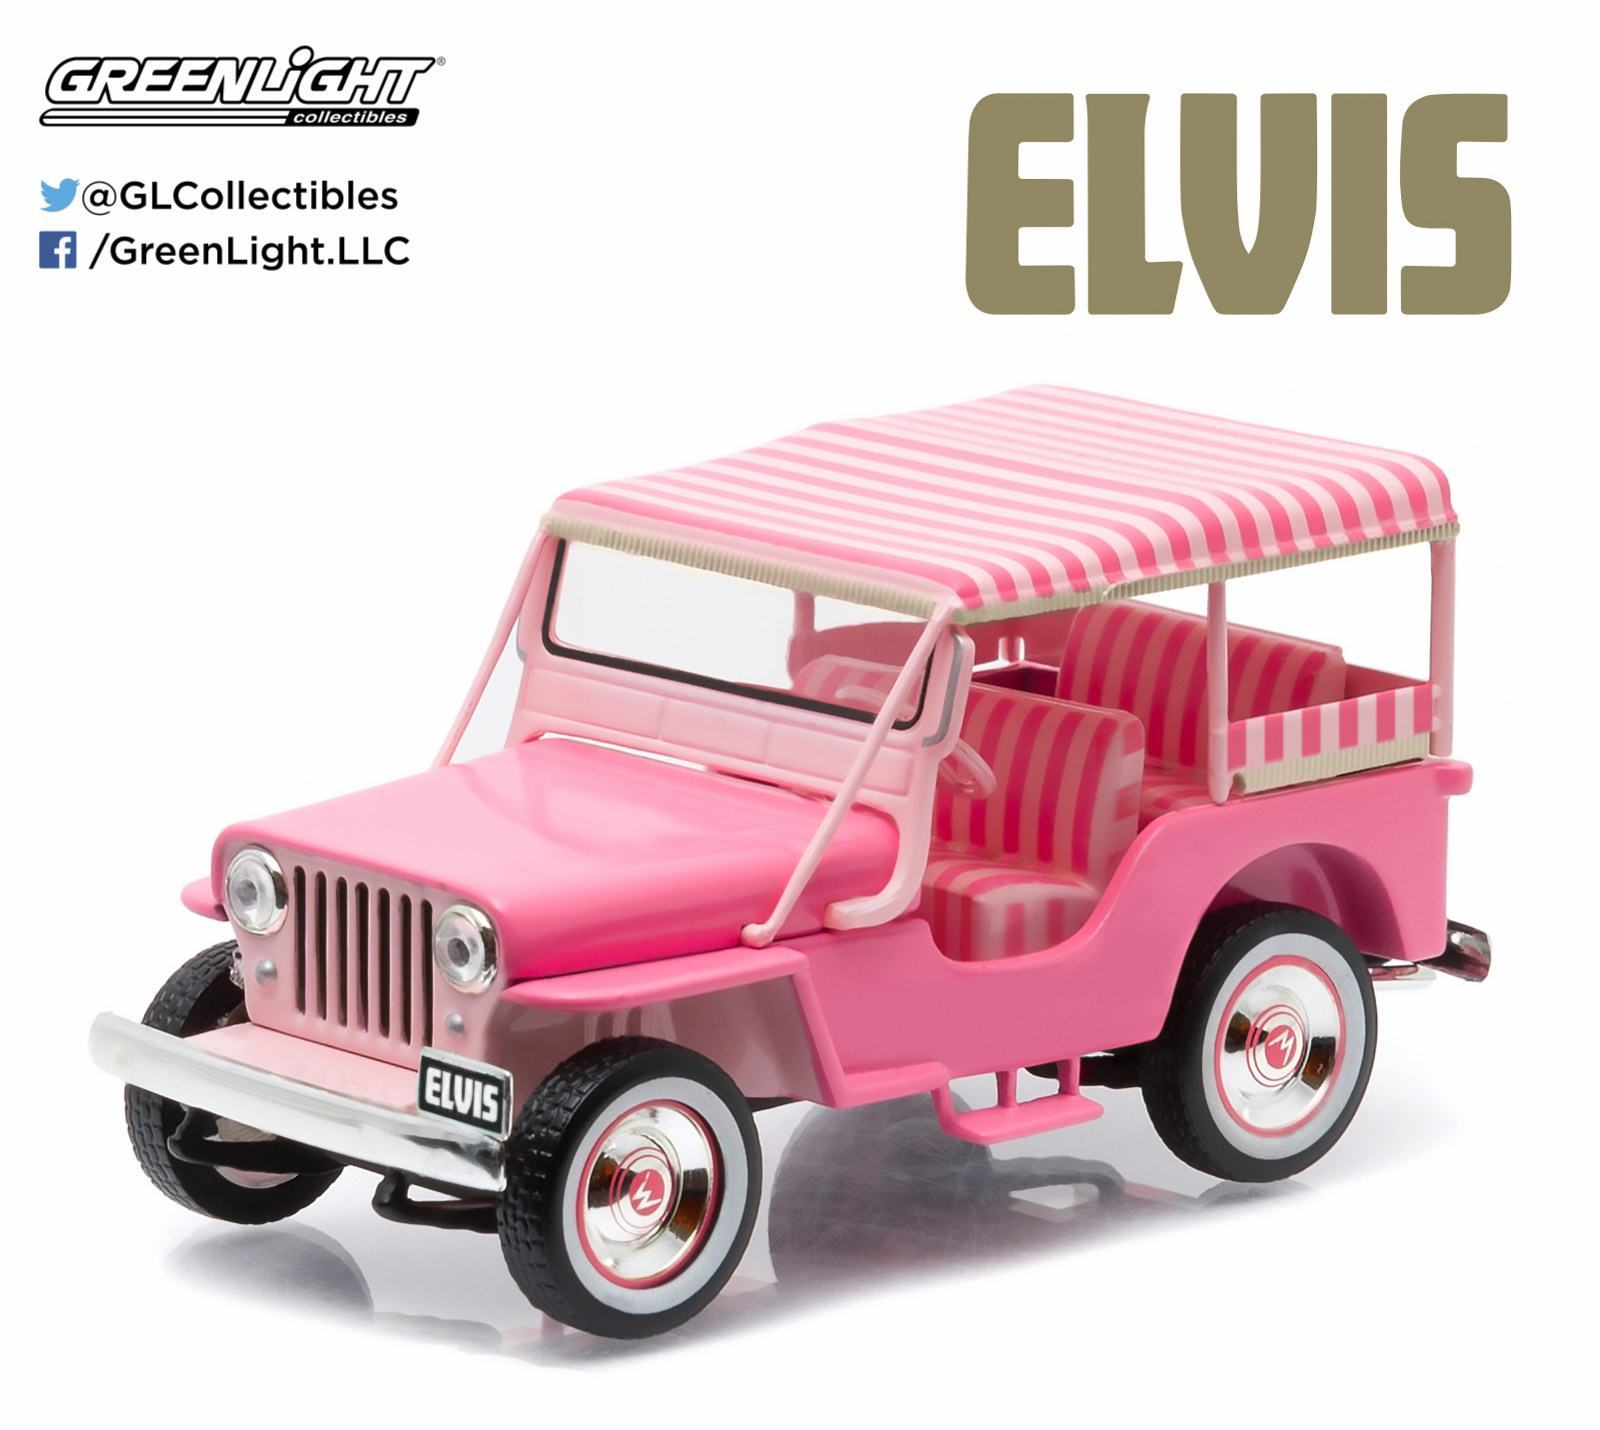 Carro-Elvis-Presley-Pink-Jeep-Surrey-1-43-Die-Cast-Metal-Vehicle-03